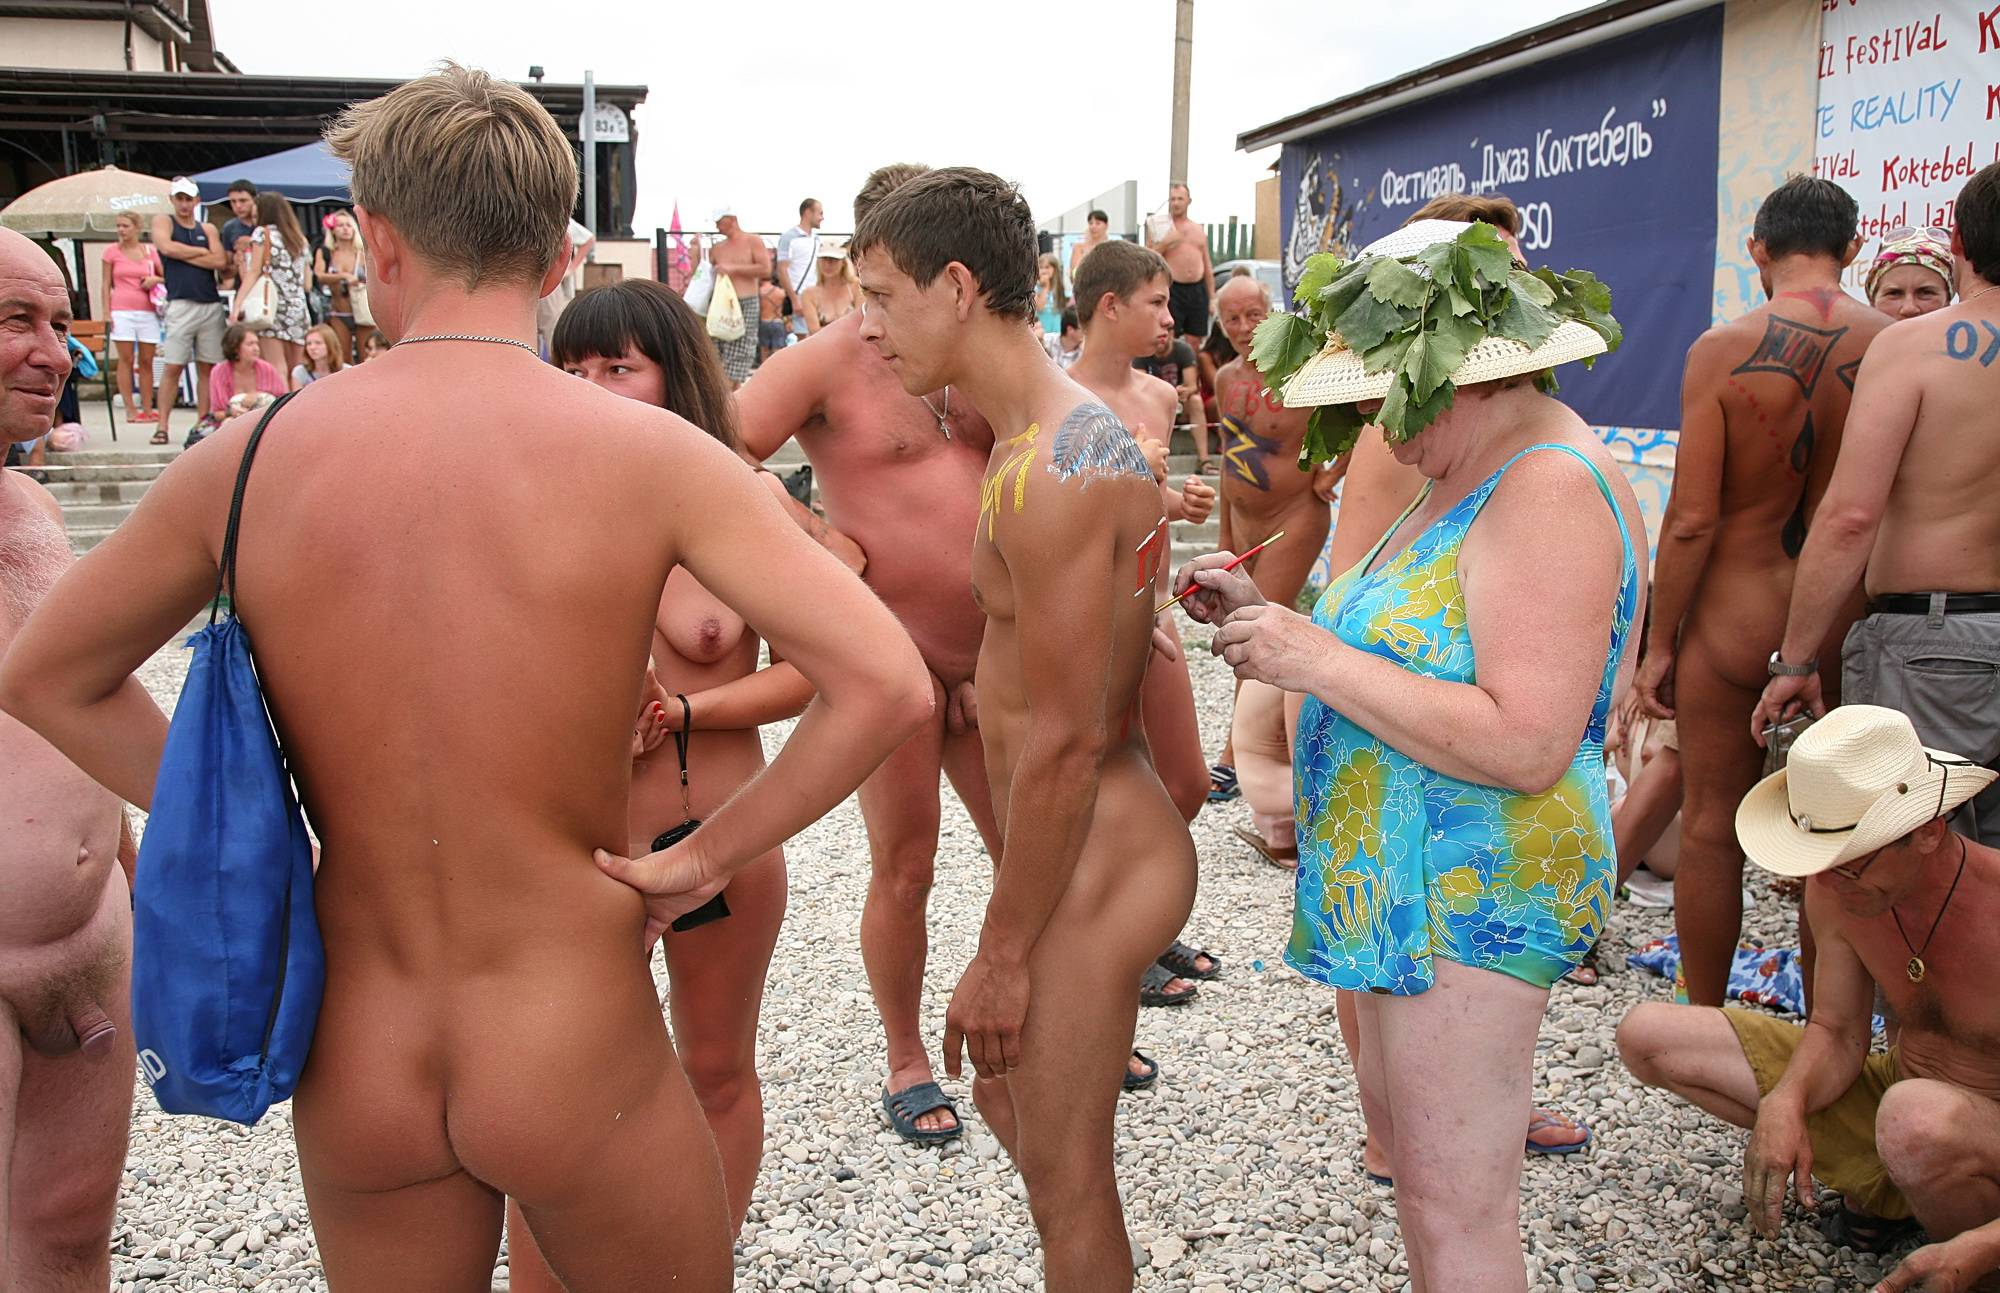 Nudist Gallery Contests On The Beach - 2